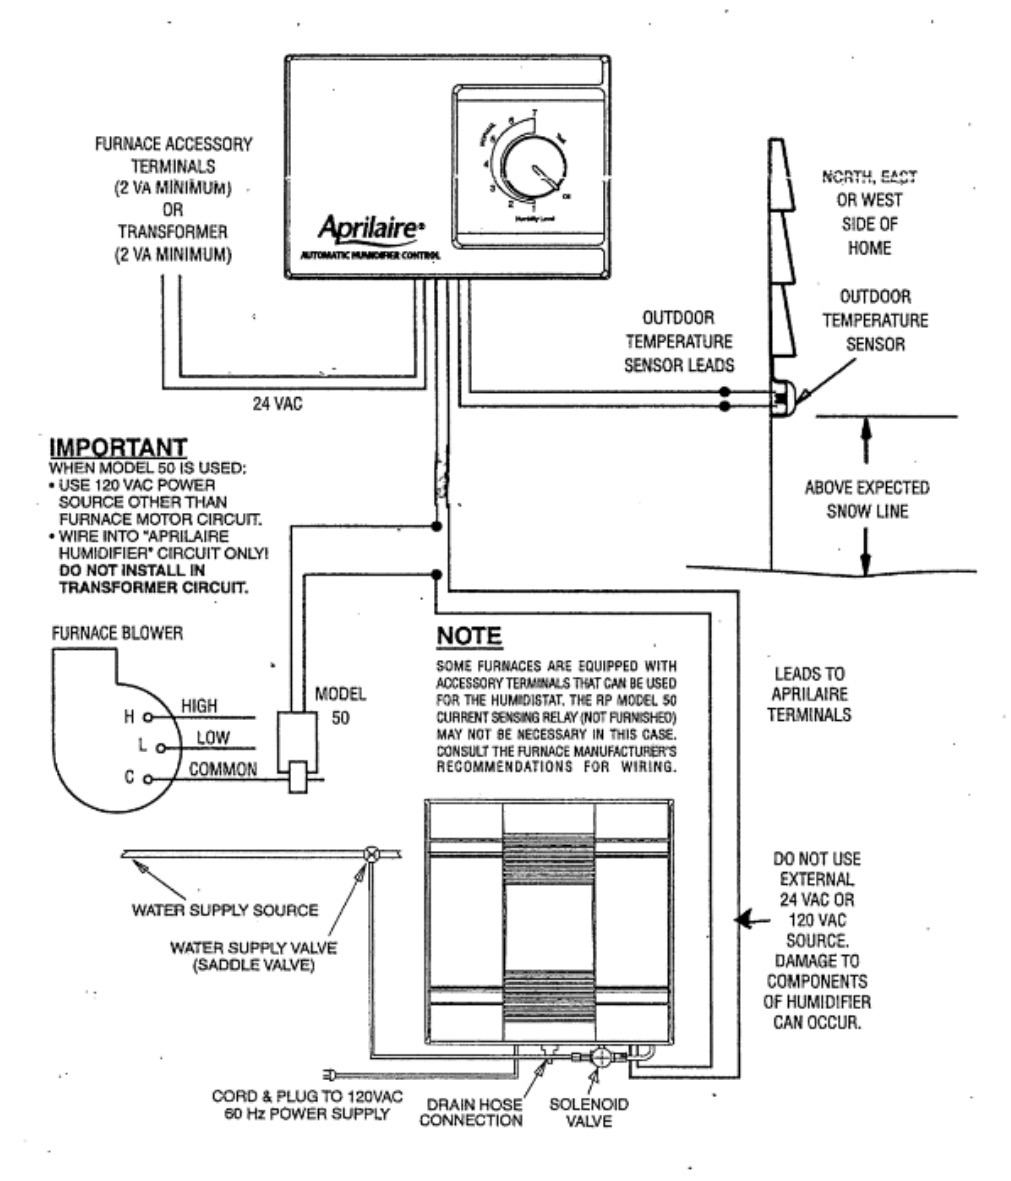 elvox intercom wiring diagram collection